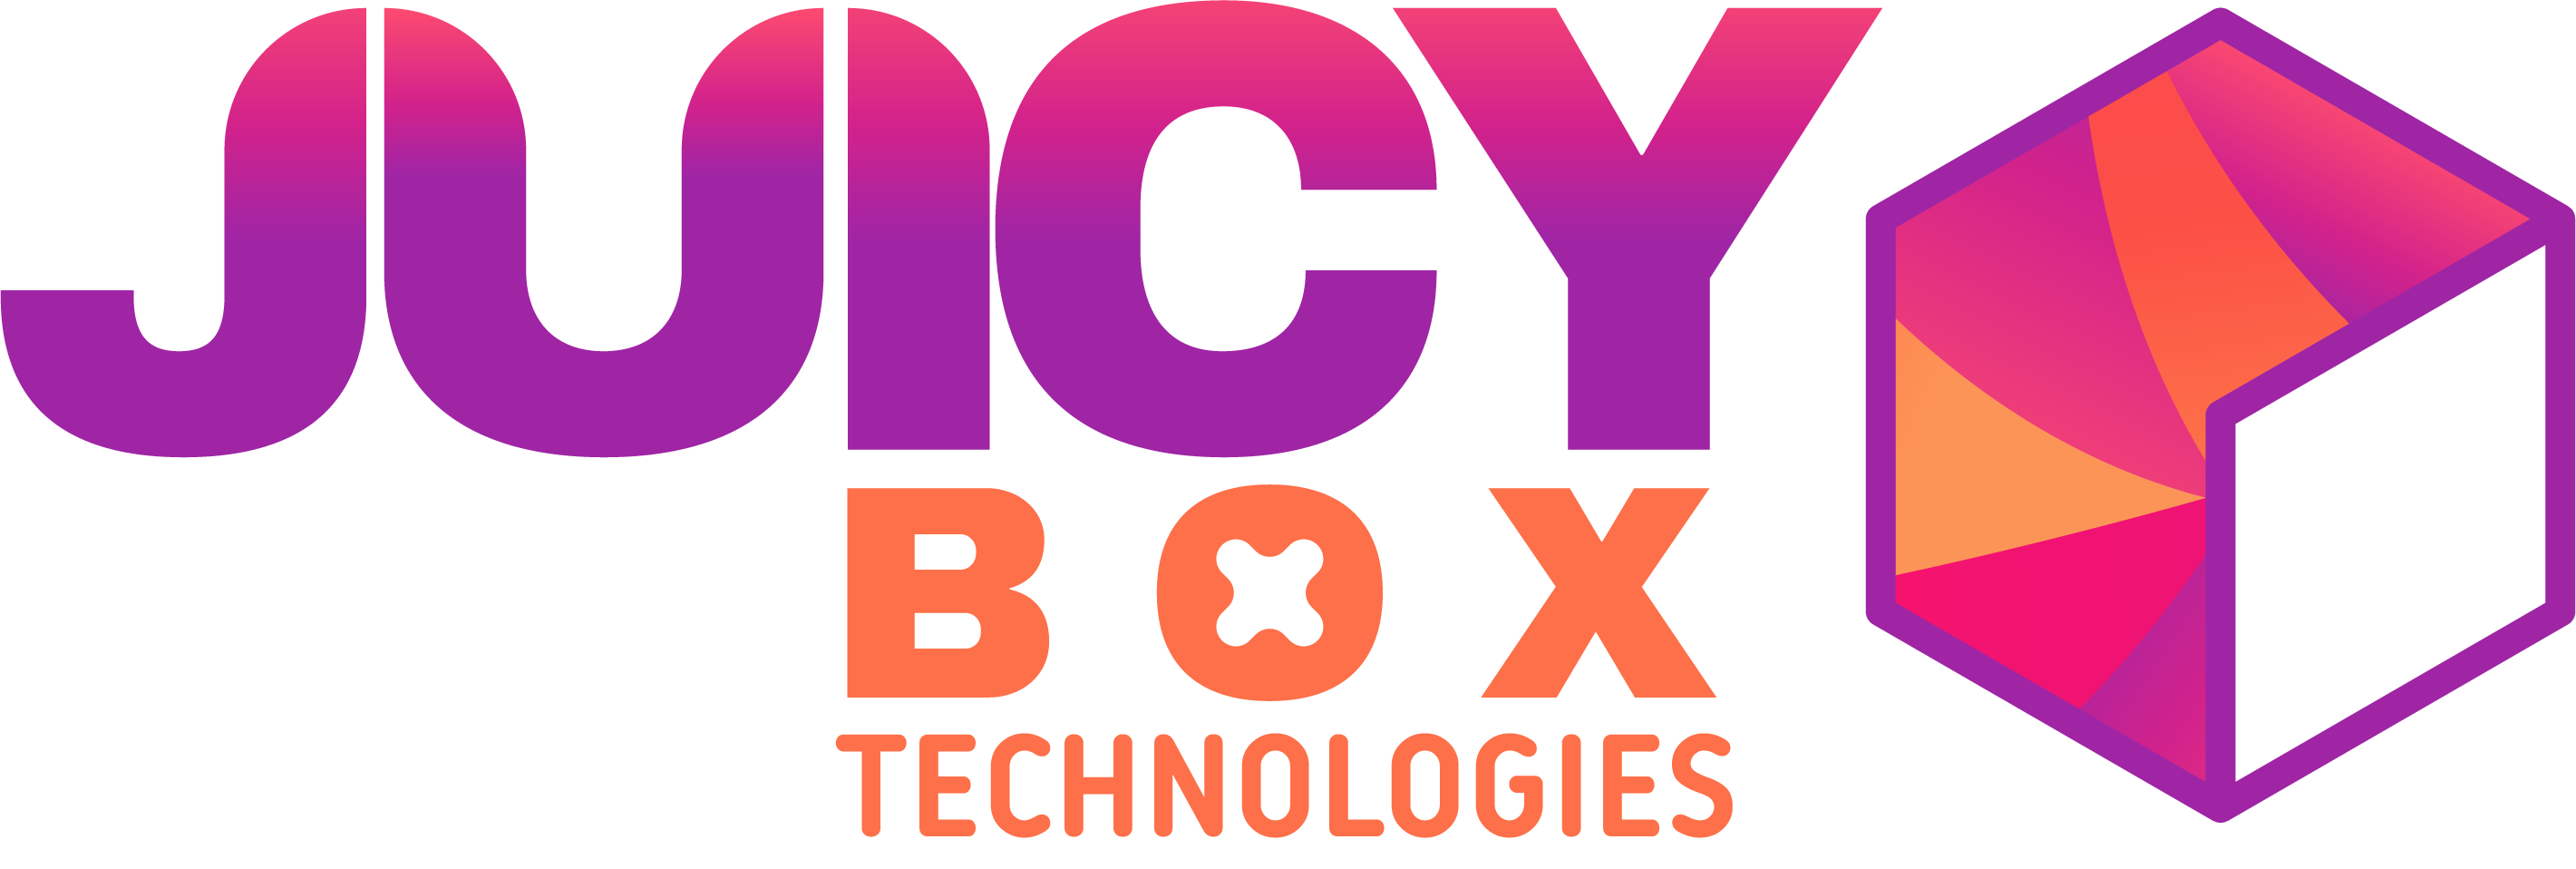 Juicybox technologies